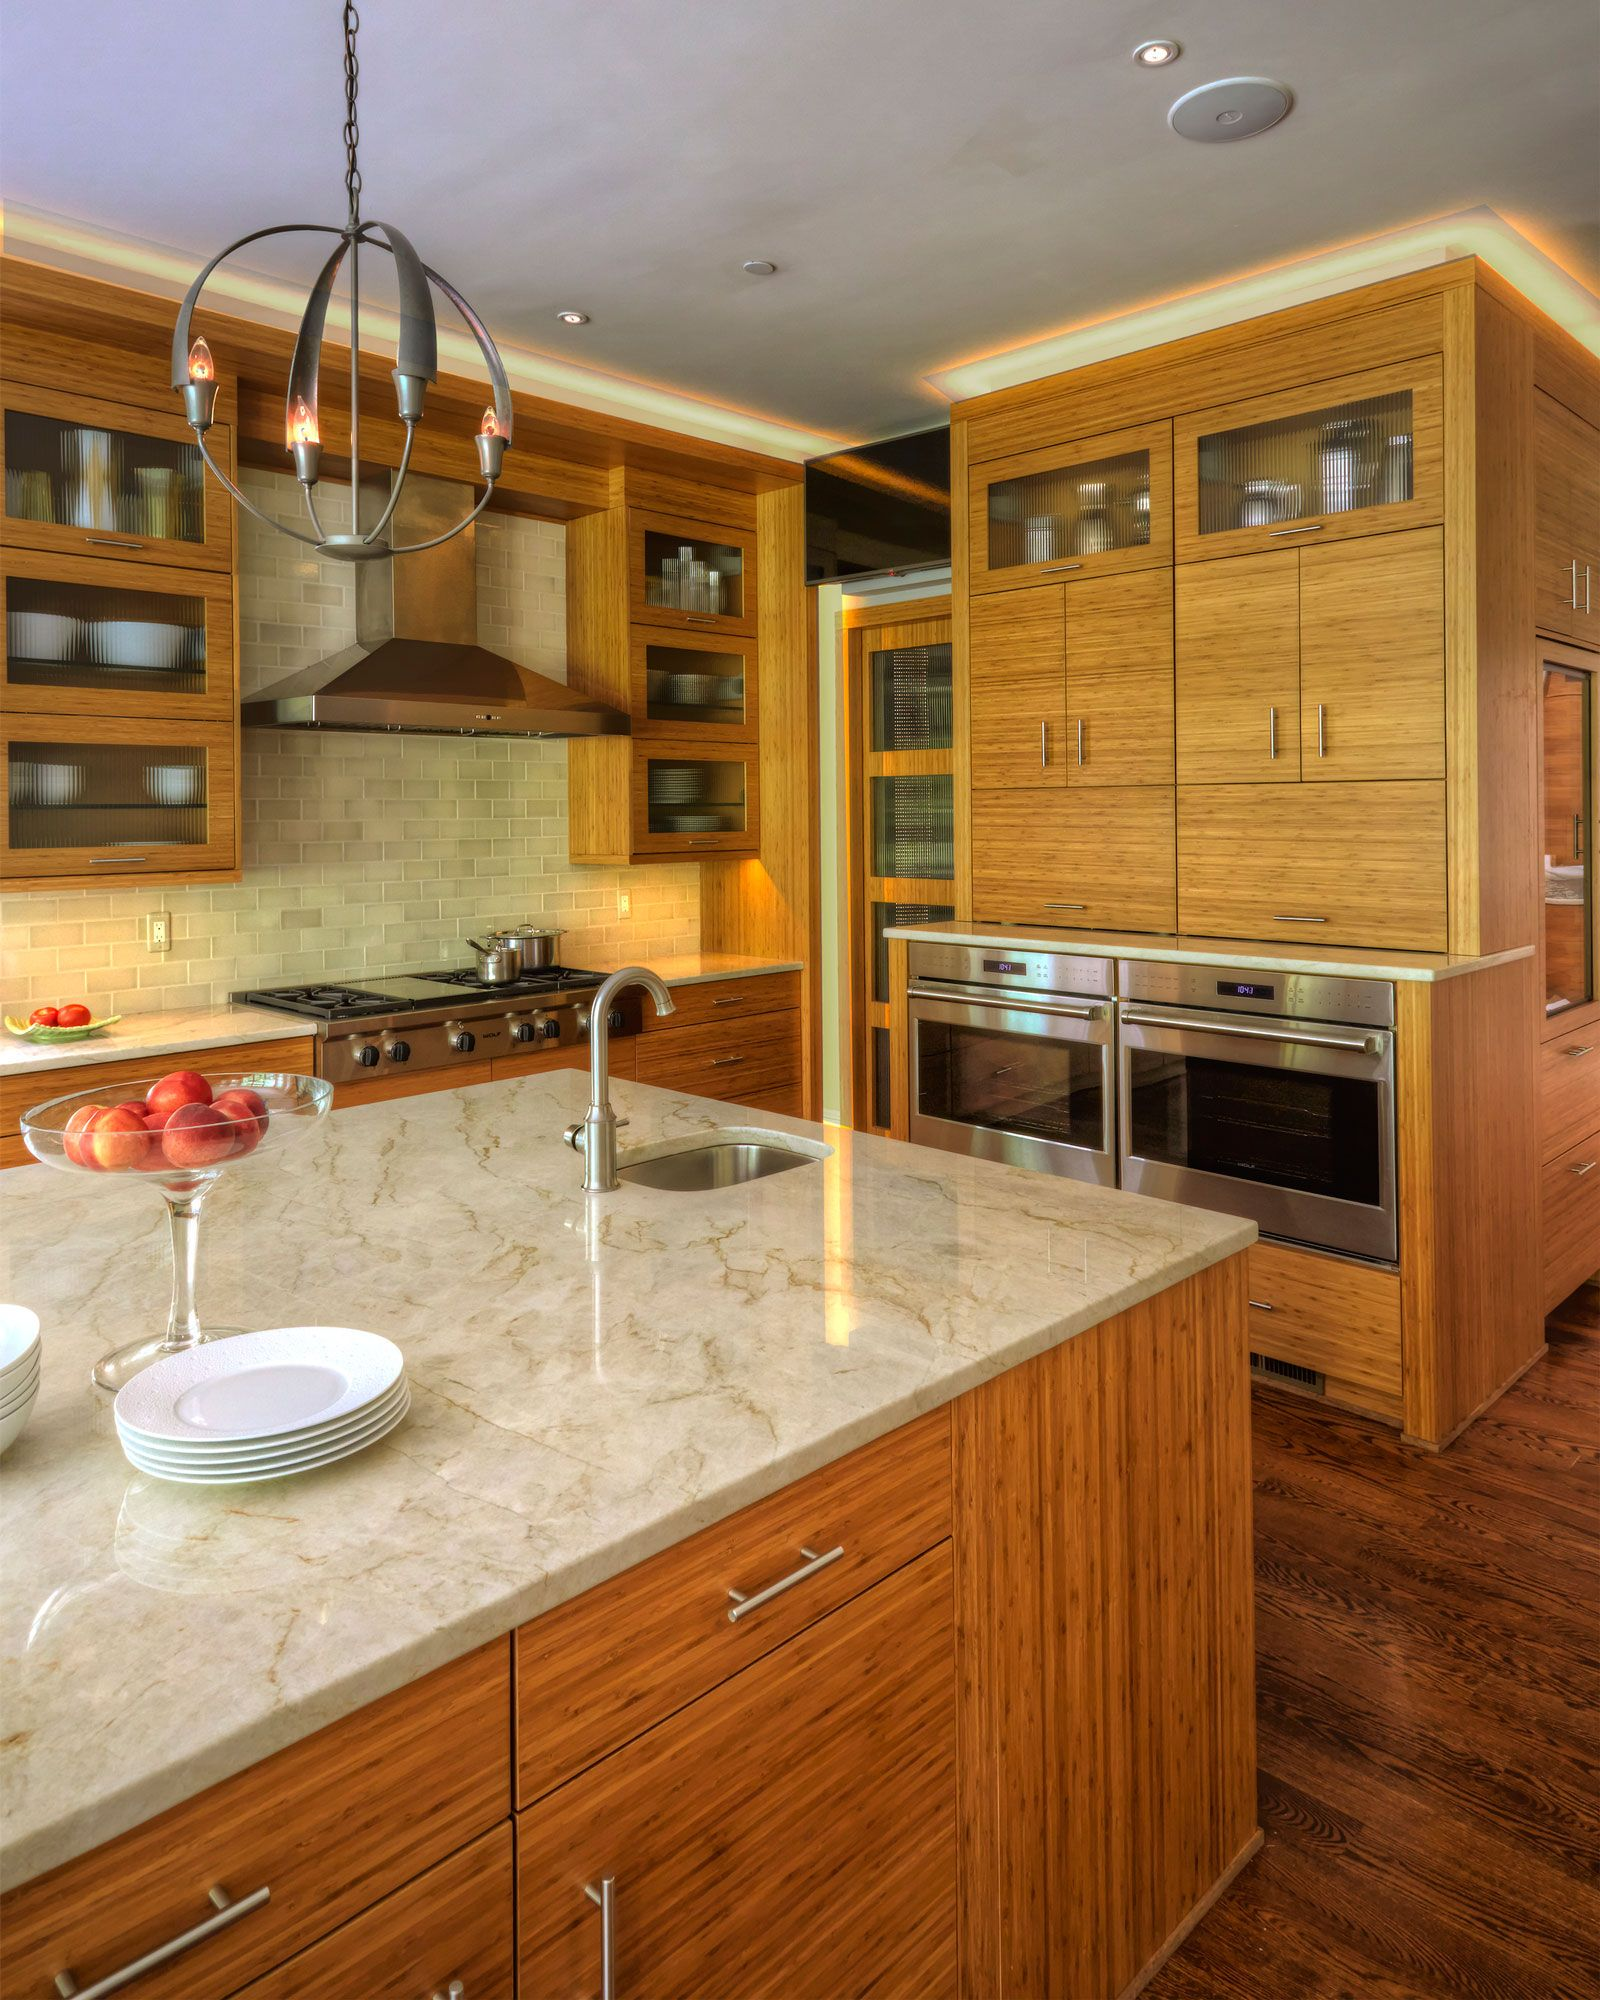 large kitchen first place name mark t white ckd cbd photo mike kaskel large kitchen on t kitchen layout id=97504